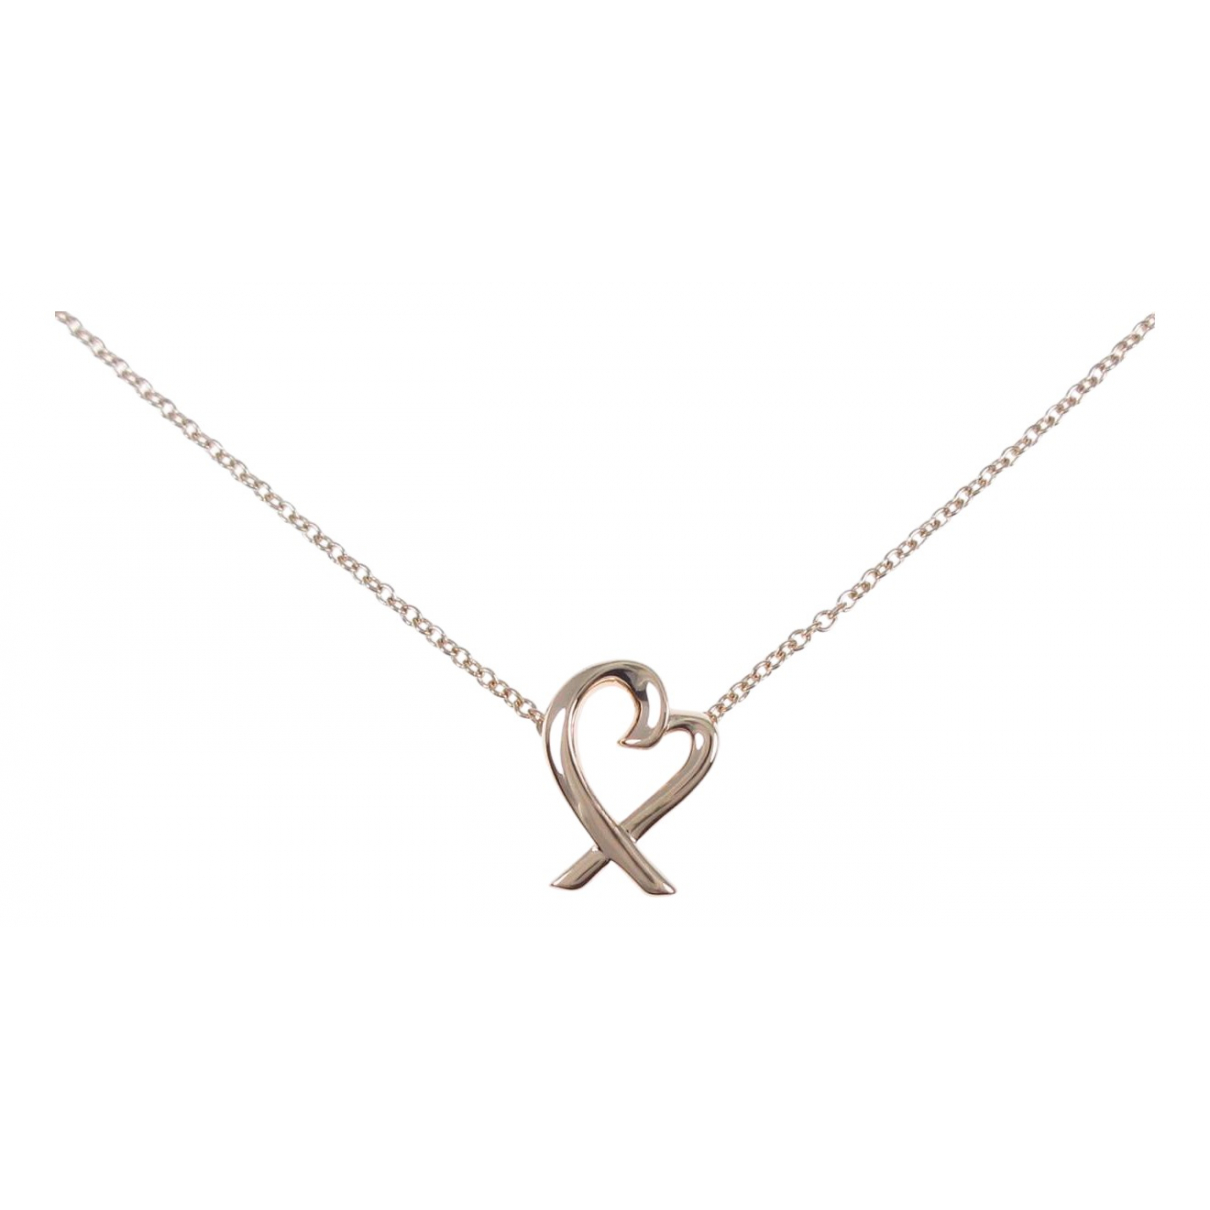 Tiffany & Co Paloma Picasso Kette in  Silber Rosegold